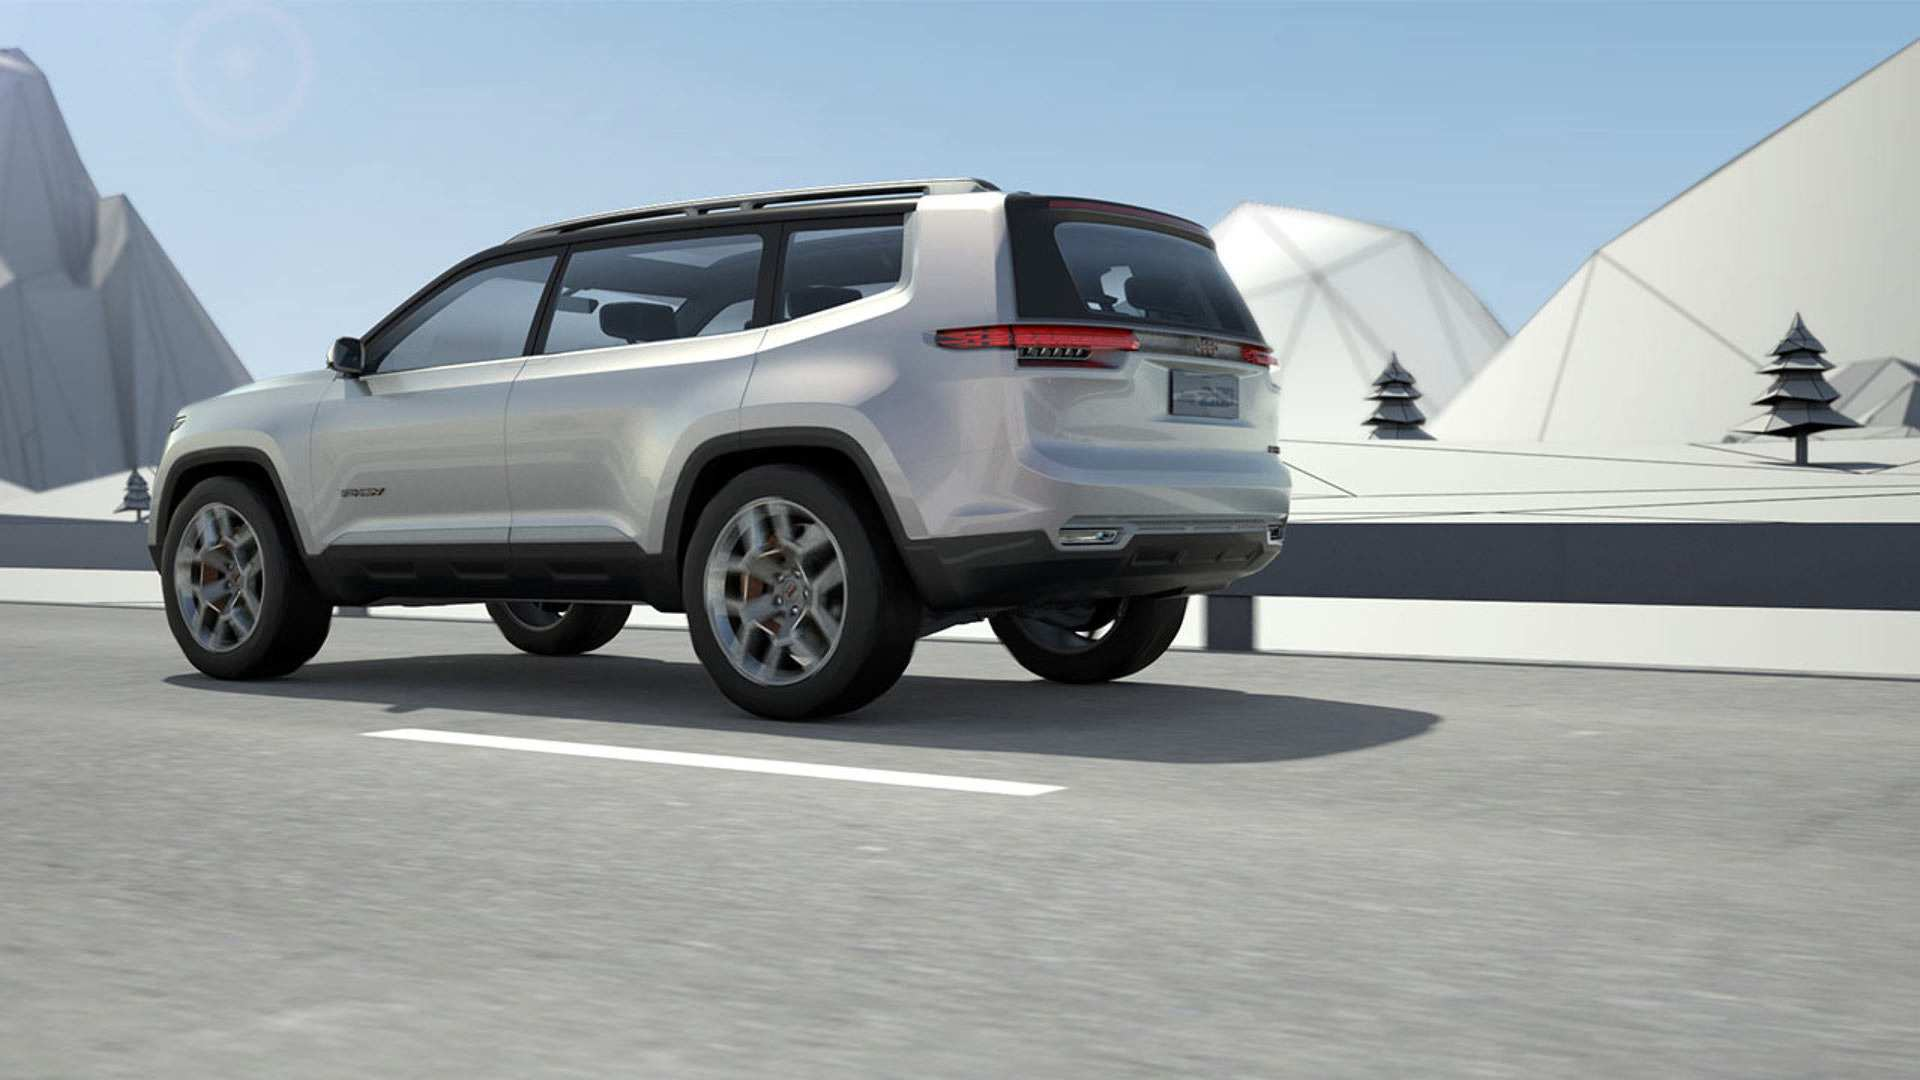 95 A Jeep Grand Cherokee 2020 Concept Specs And Review